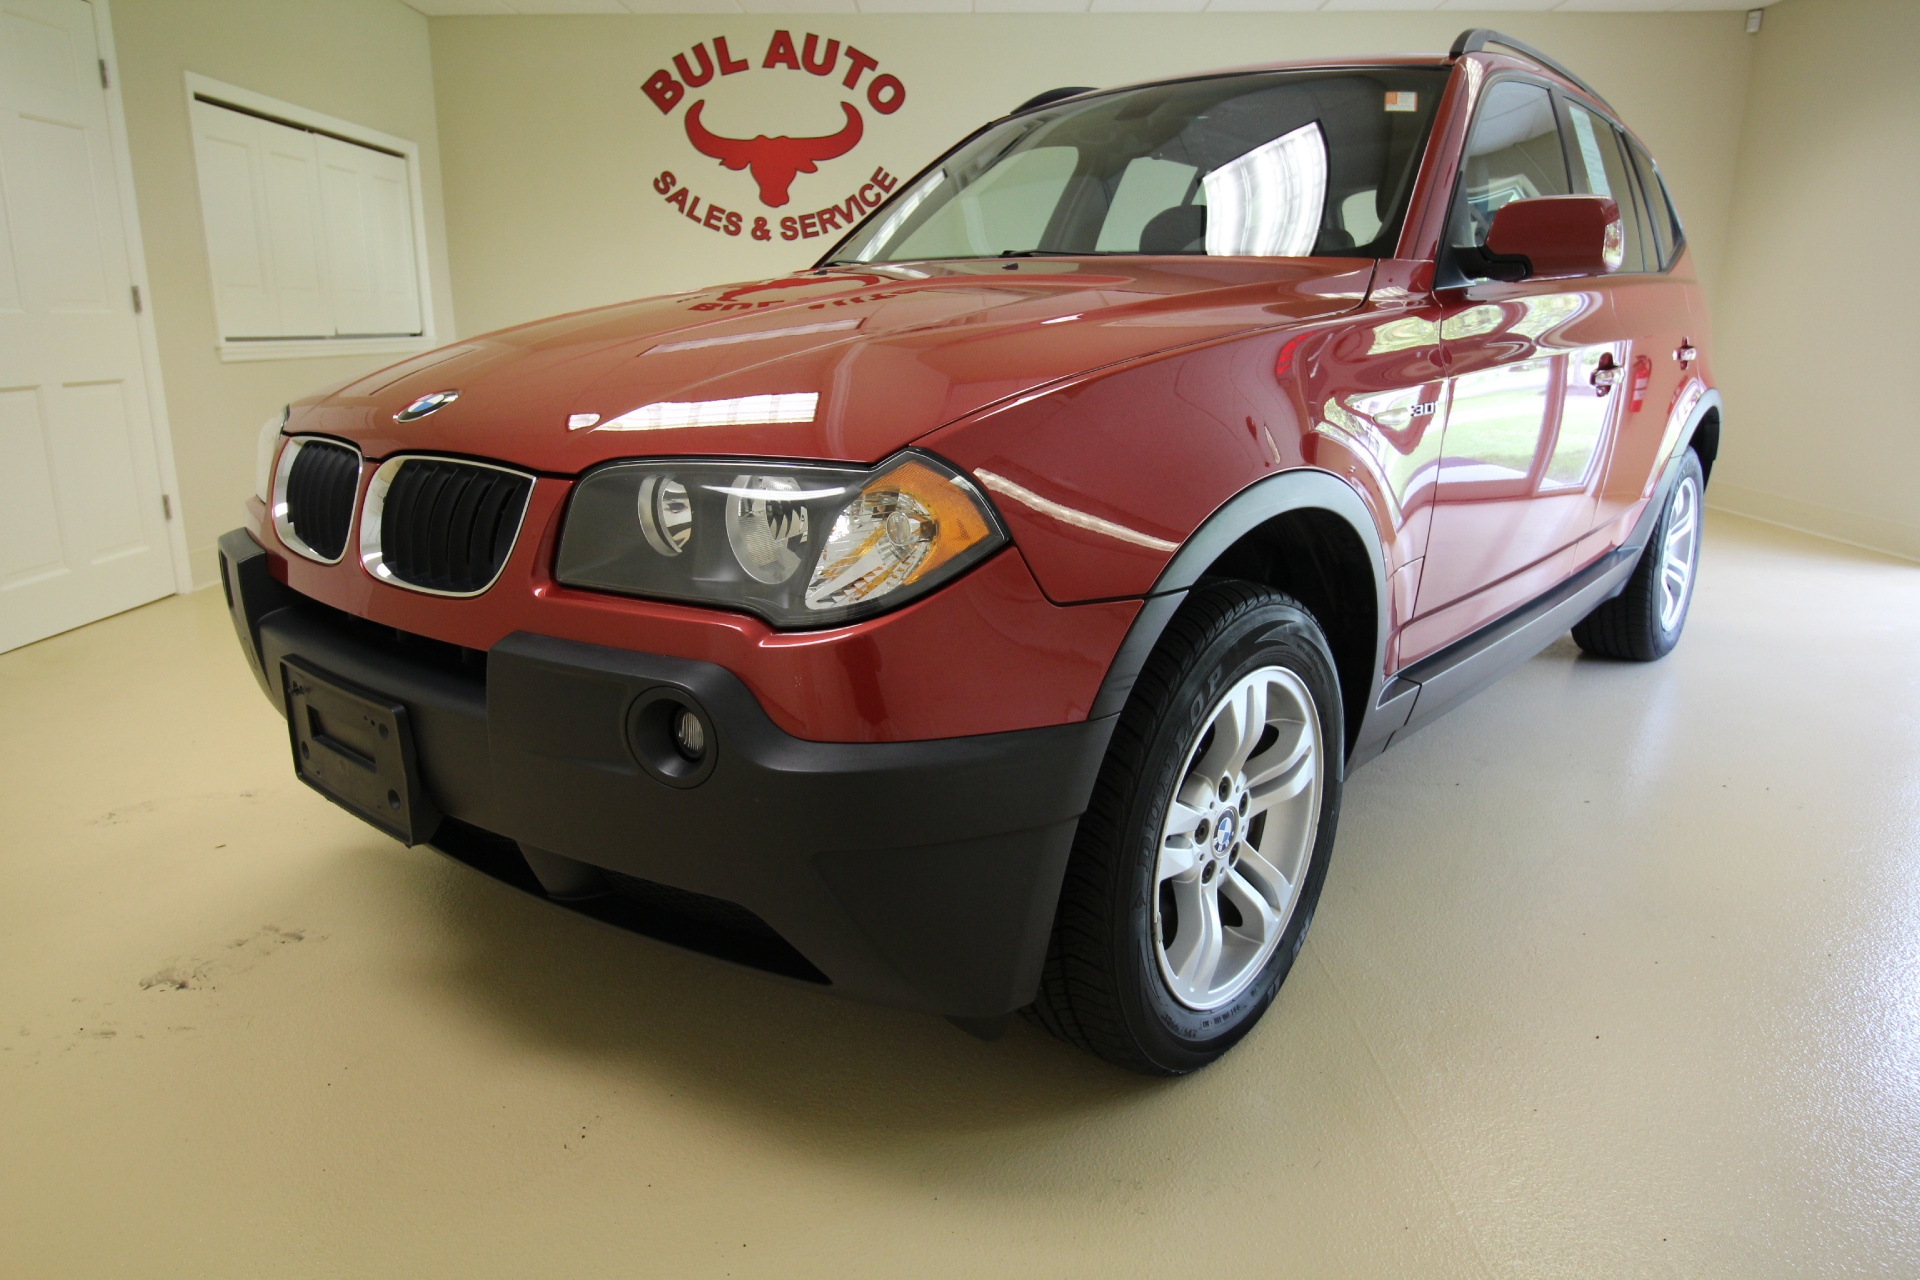 2004 bmw x3 stock 16159 for sale near albany ny. Black Bedroom Furniture Sets. Home Design Ideas